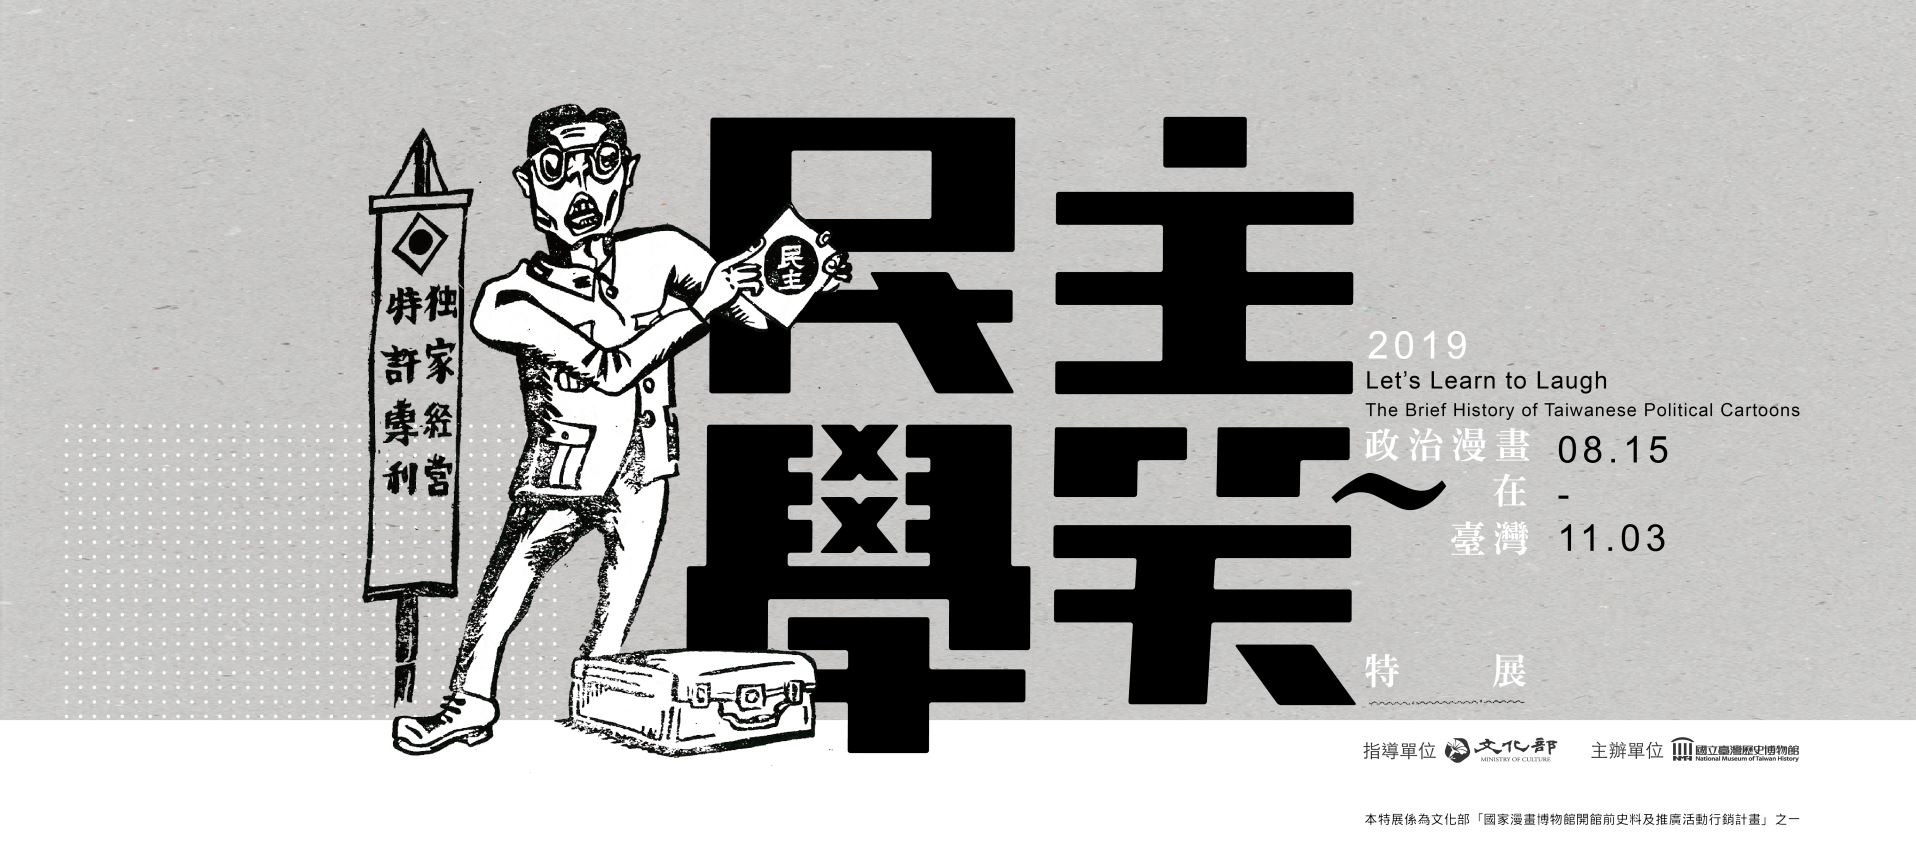 'Let's Learn to Laugh: The Brief History of Taiwanese Political Cartoons'